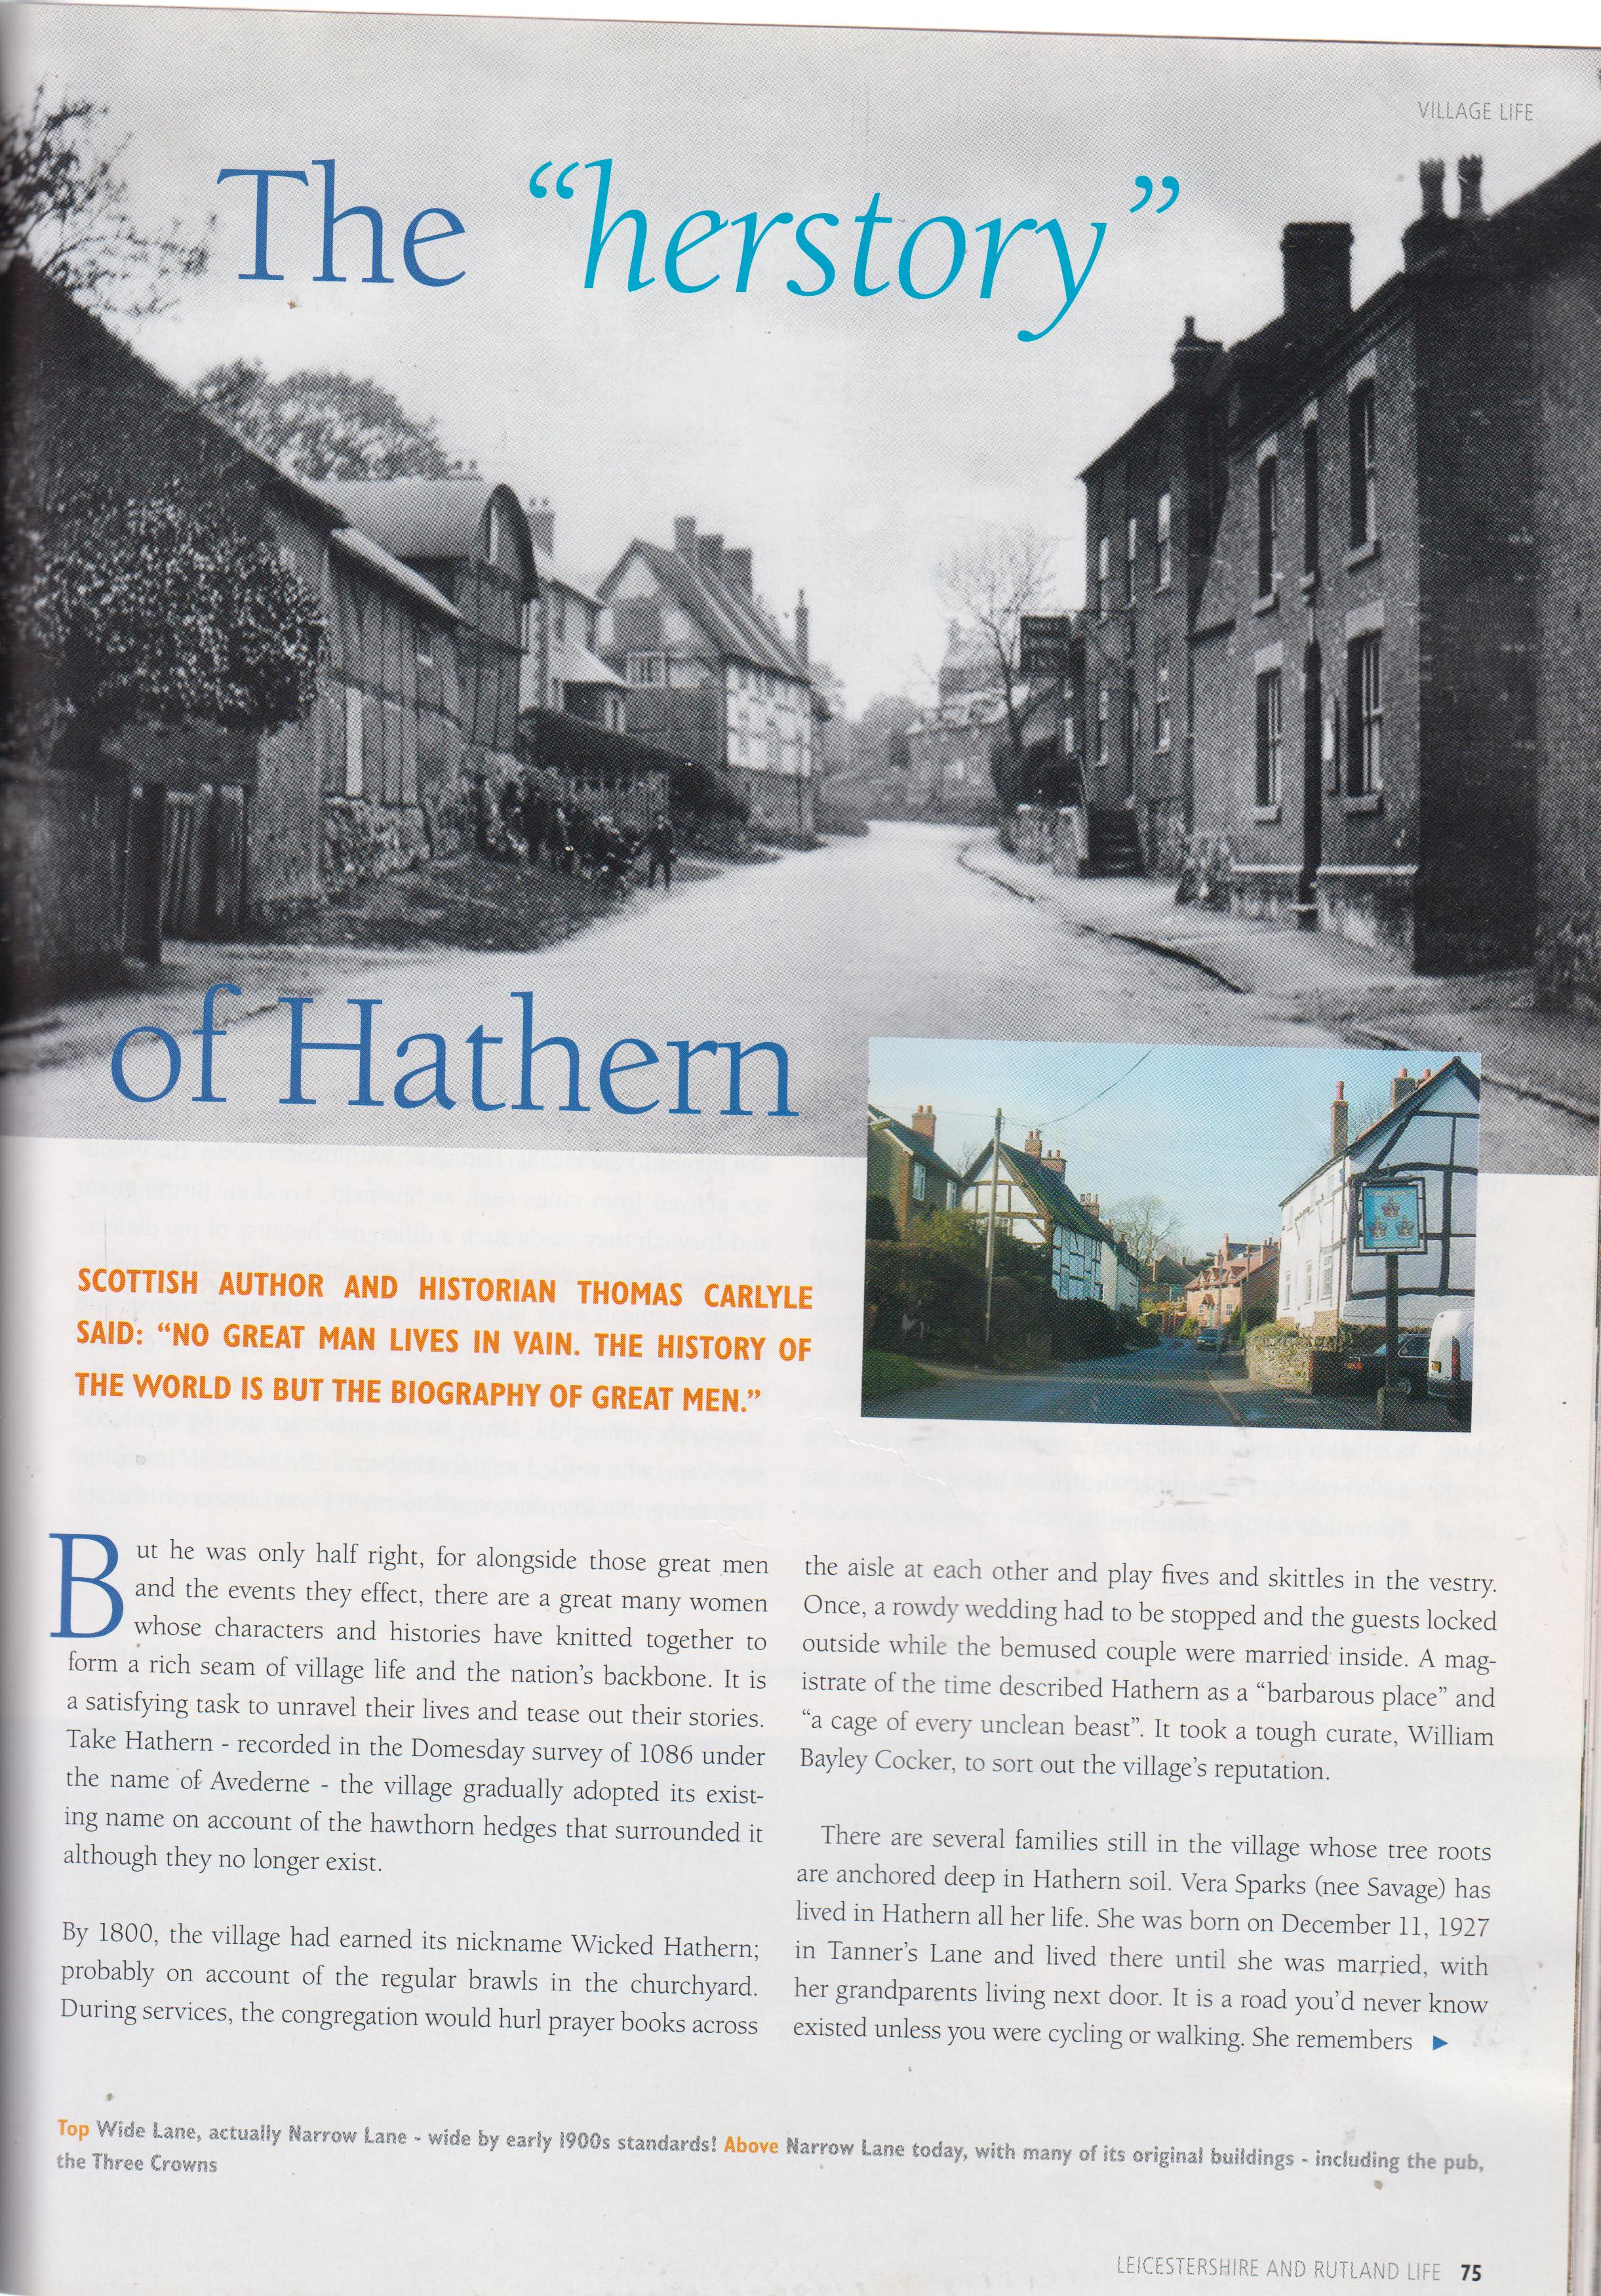 herstory of hathern 1 of 5 001